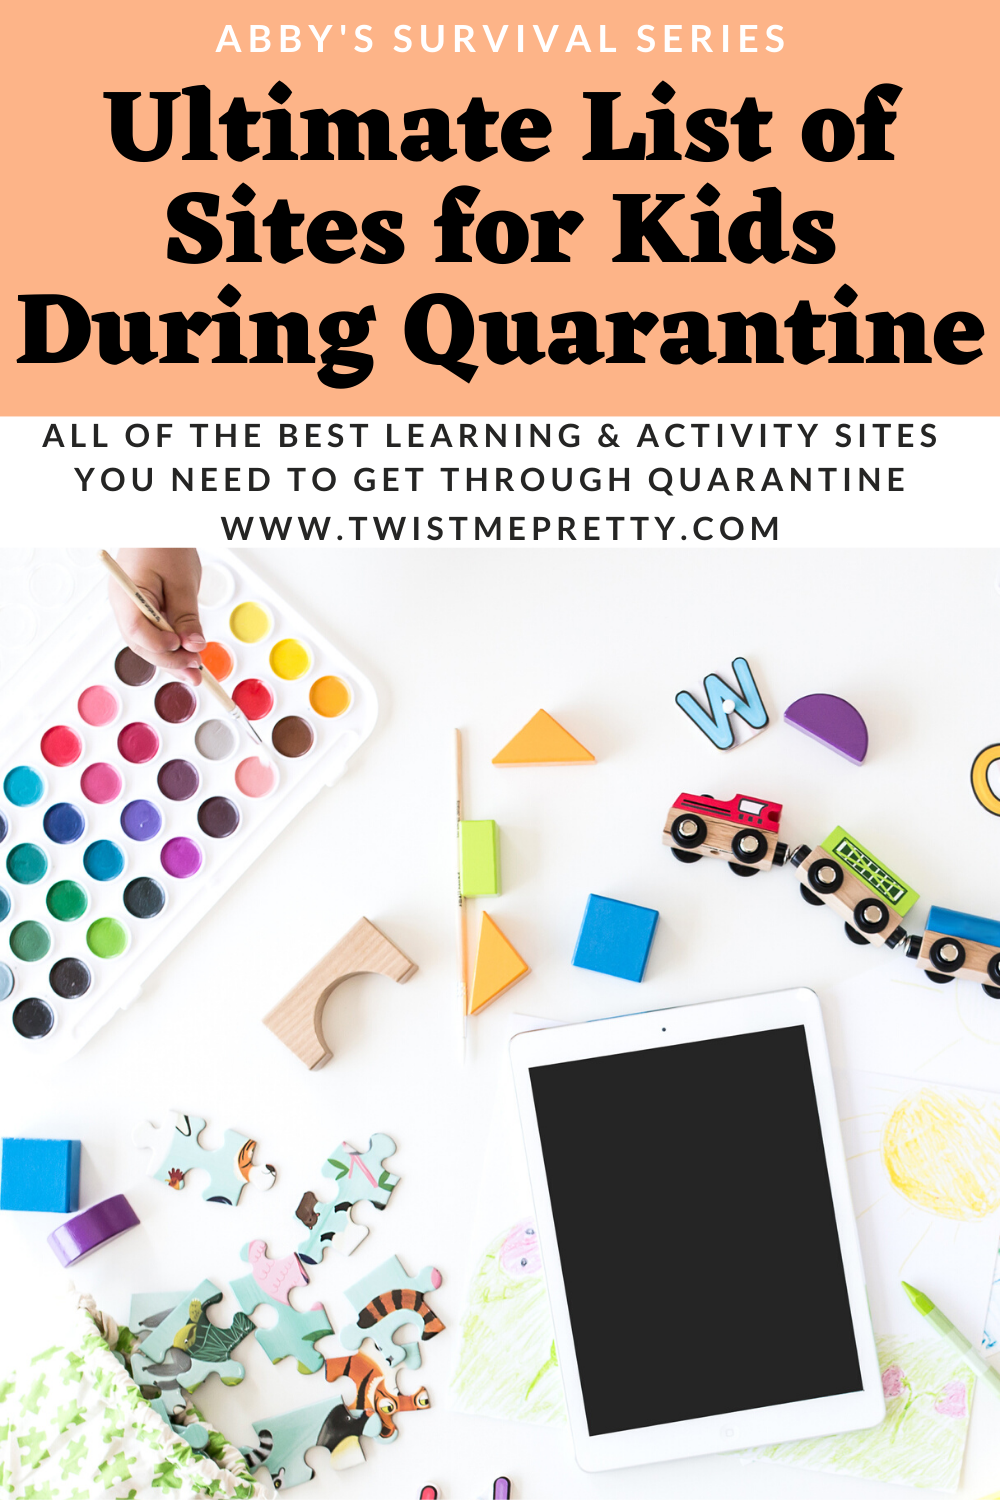 Abby's Survival Series: Ultimate List of Sites for Kids During Quarantine. All of the best learning & Activity sites you need. www.TwistMePretty.com